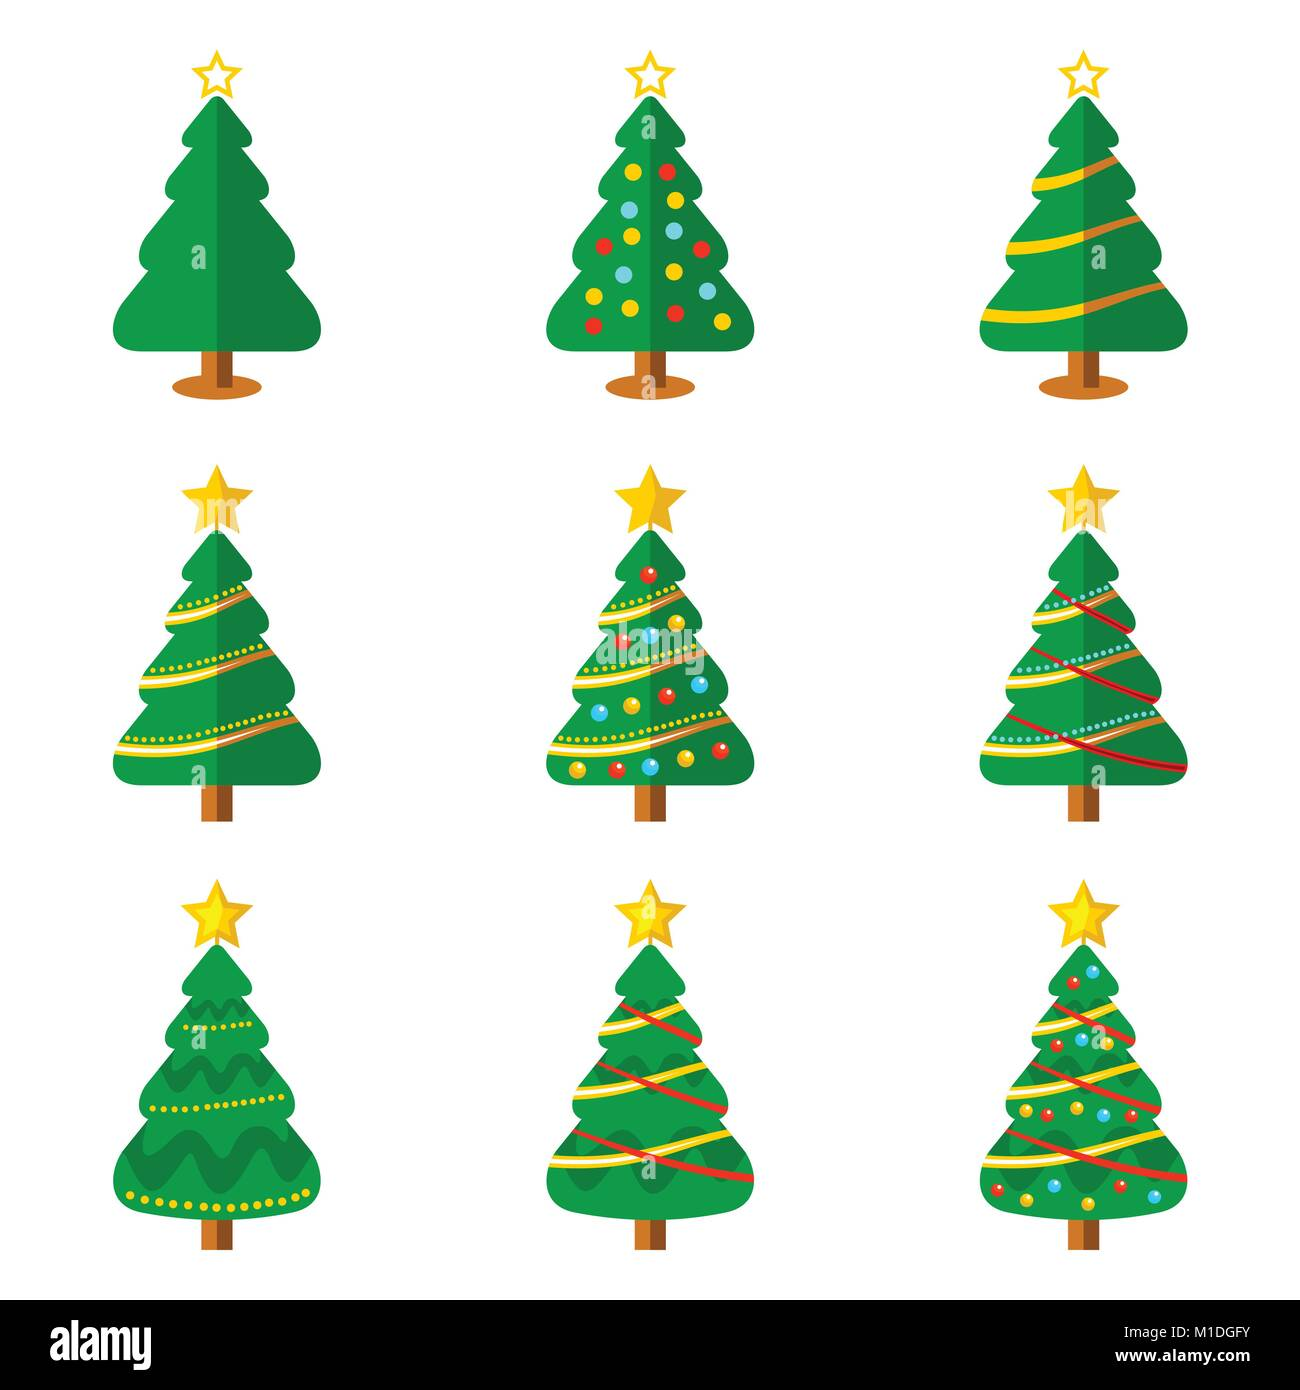 Christmas Tree Illustration.Christmas Tree Flat Icon Vector Graphic Illustration Sign